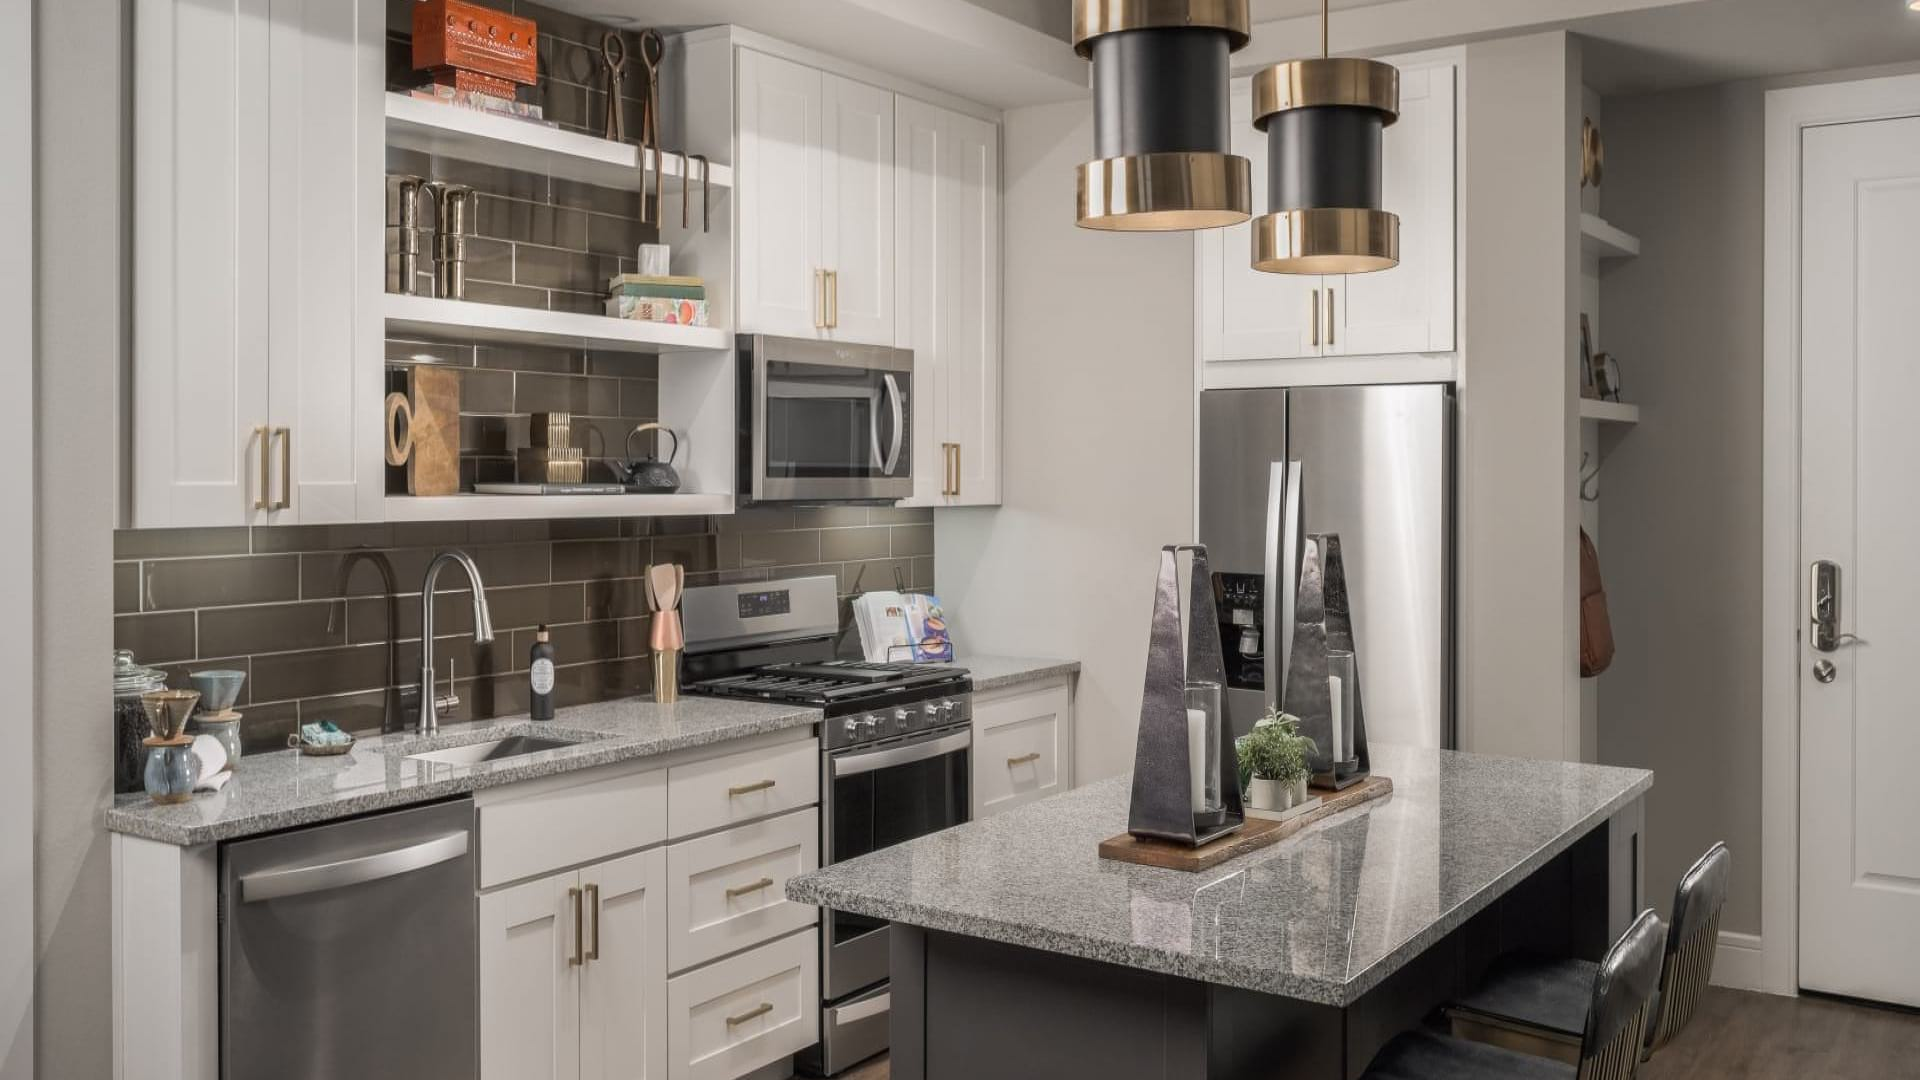 Luxury kitchen at Scottsdale apartments for rent